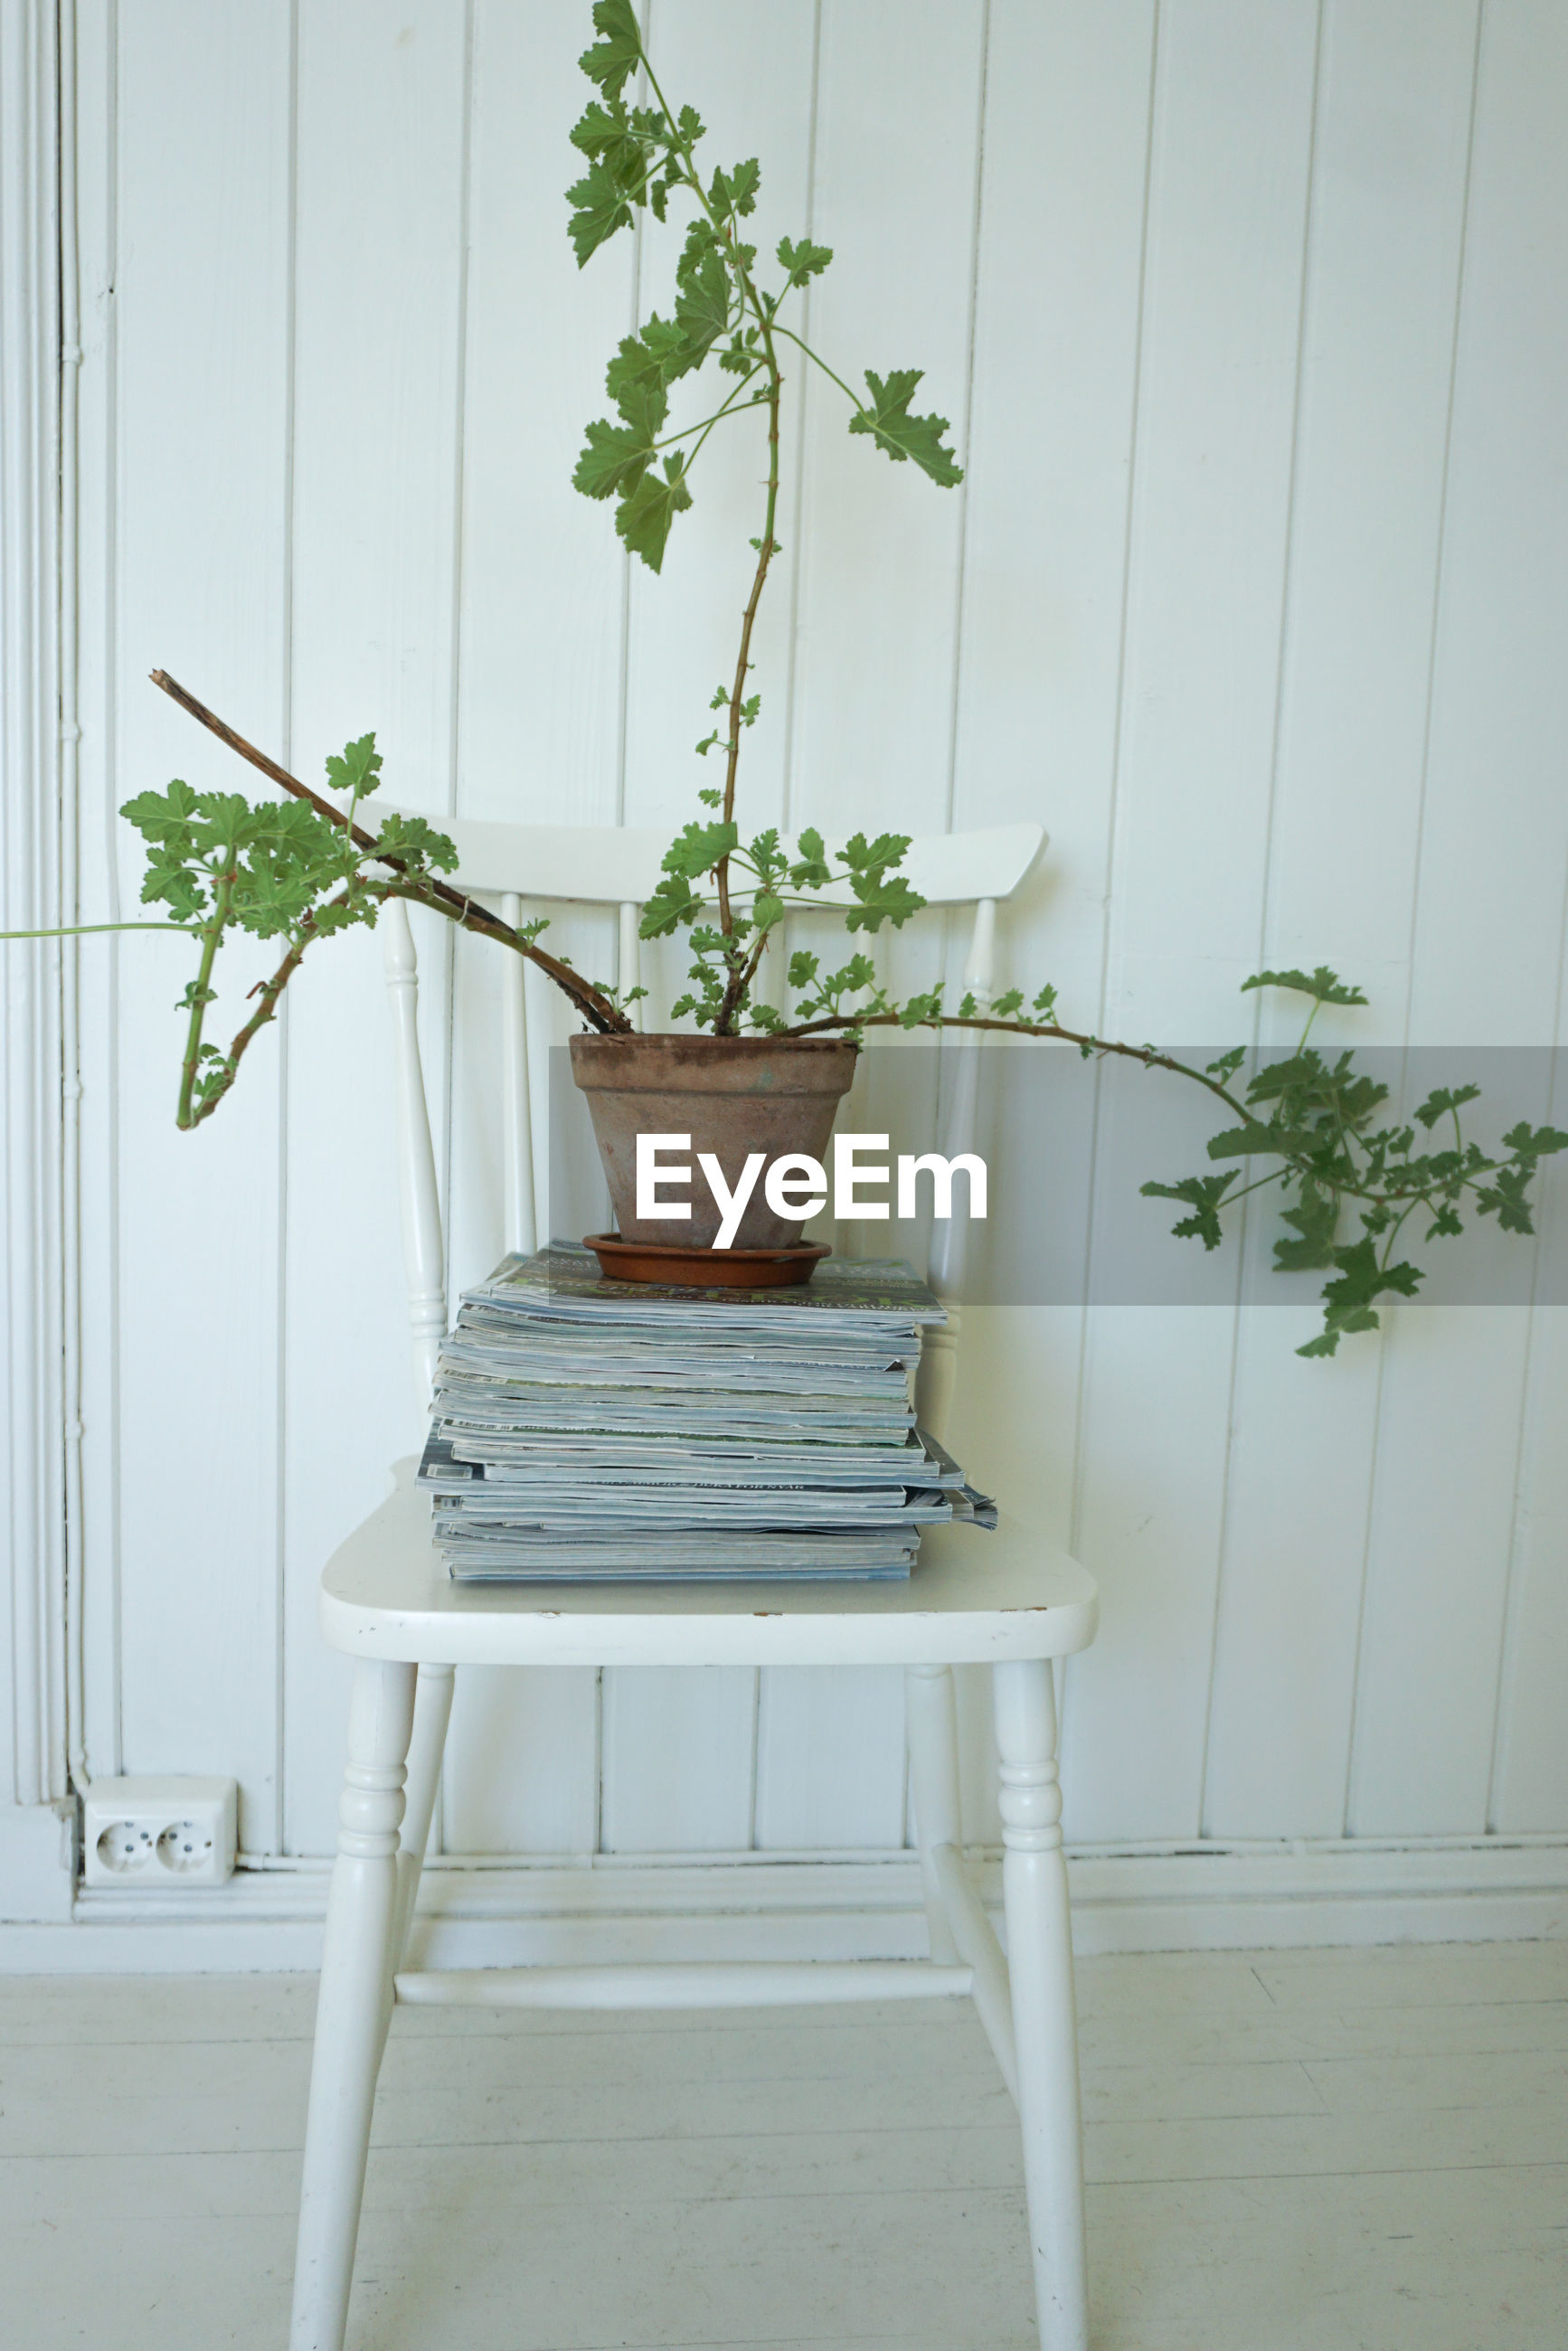 Pelargonium asp, lemon plant on magazines and an old chair